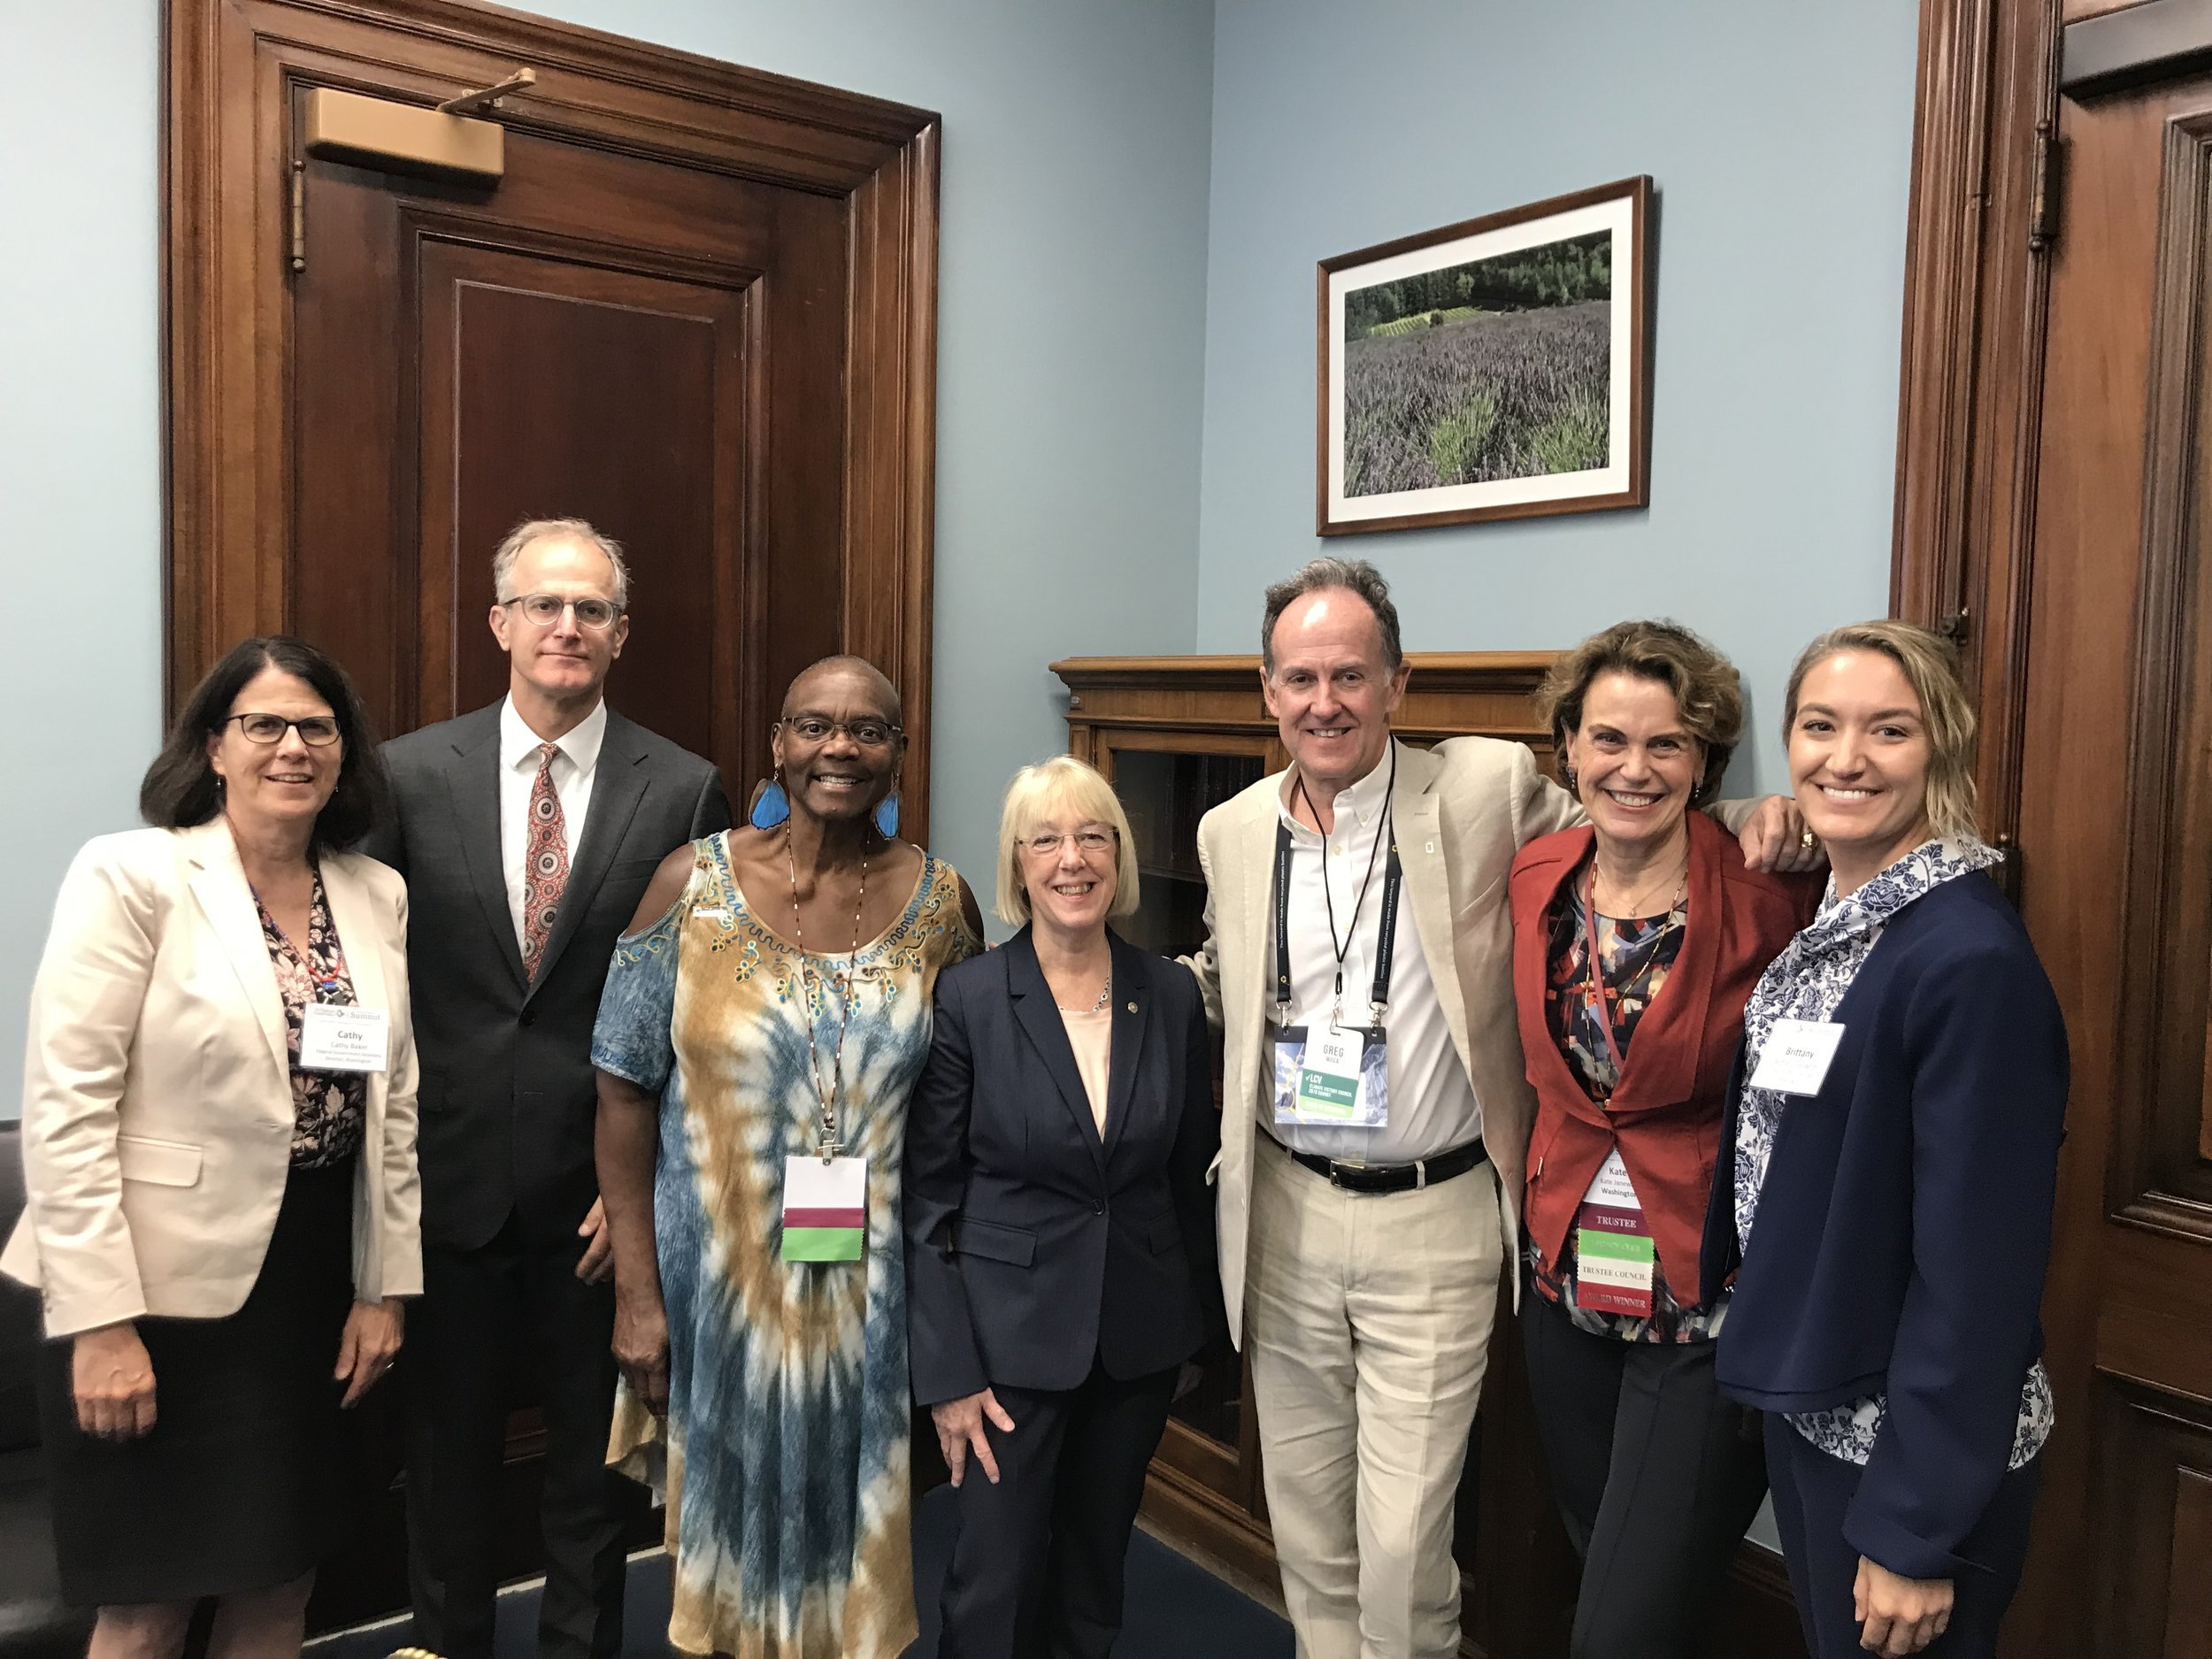 Hiking the Hill: Speaking up for Nature in Washington, DC